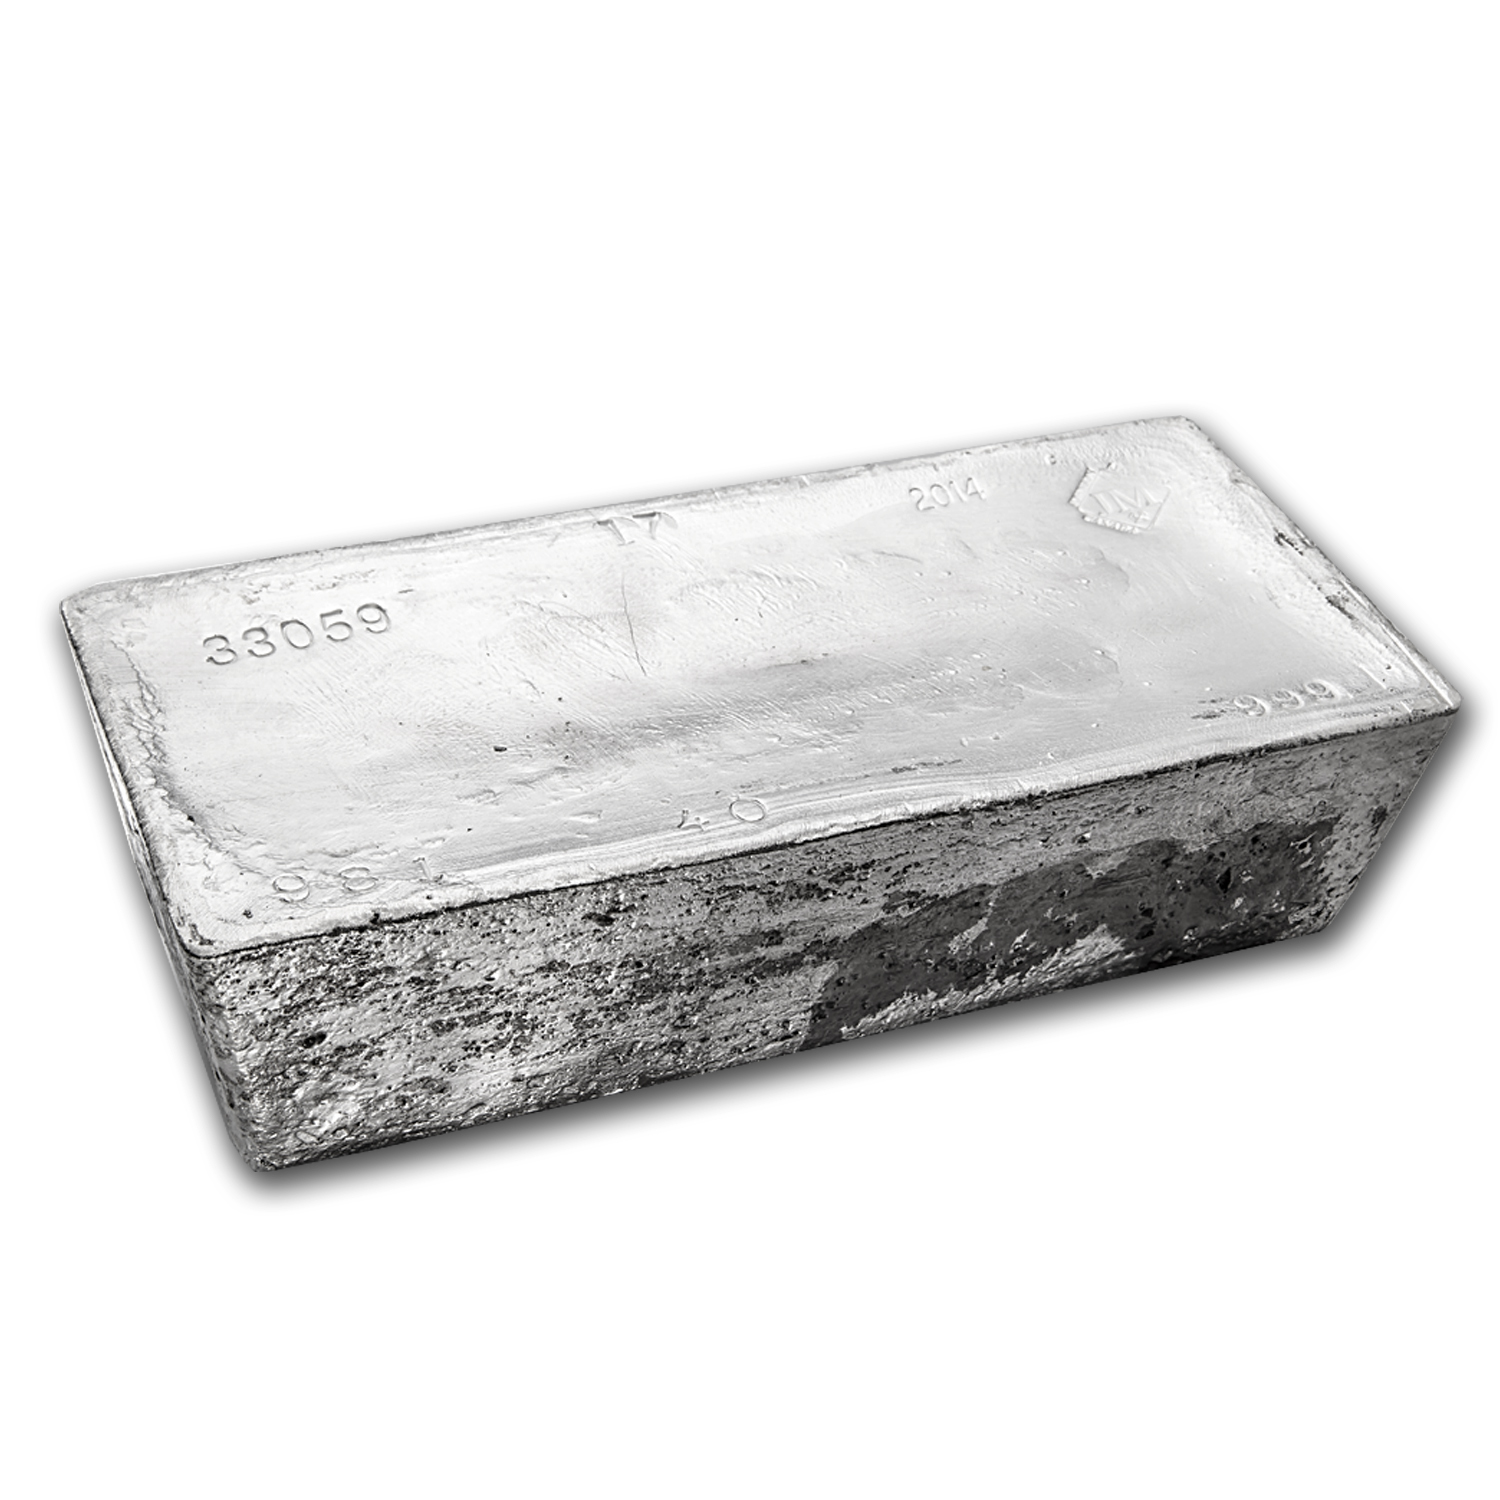 965.90 oz Silver Bars - Johnson Matthey